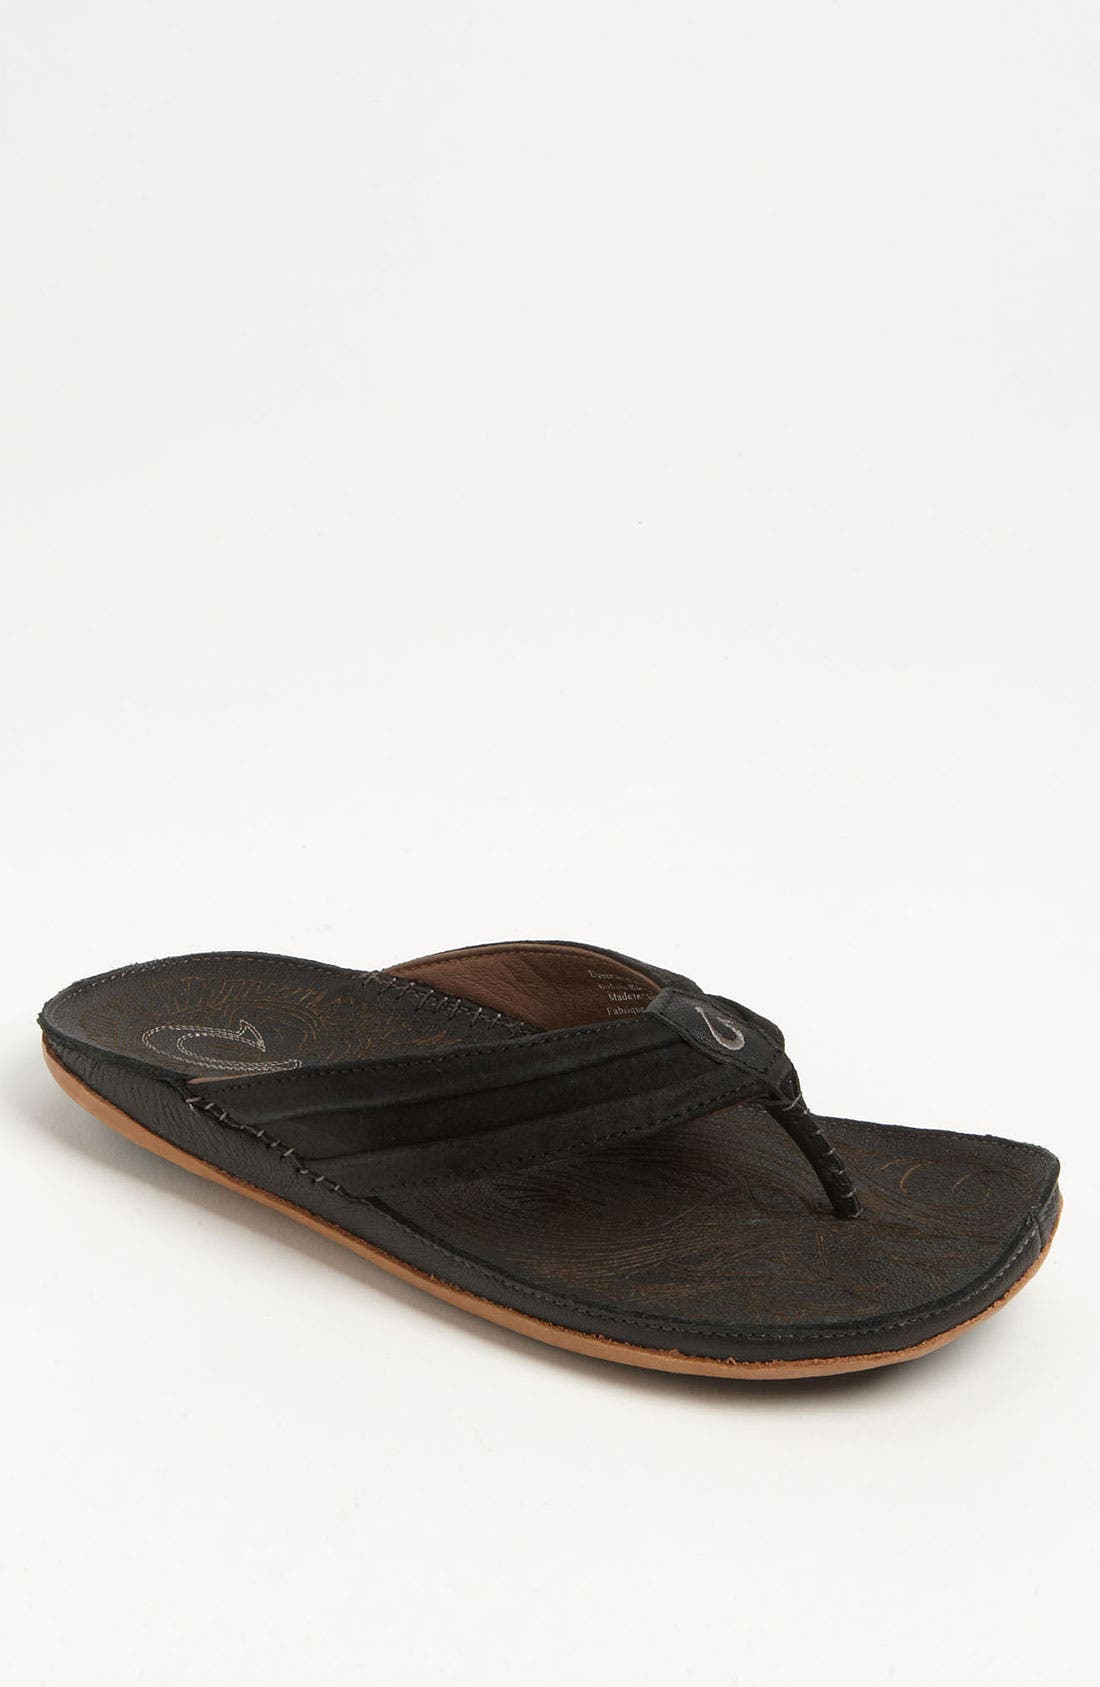 Alternate Image 1 Selected - OluKai 'Kava' Flip Flop (Men)